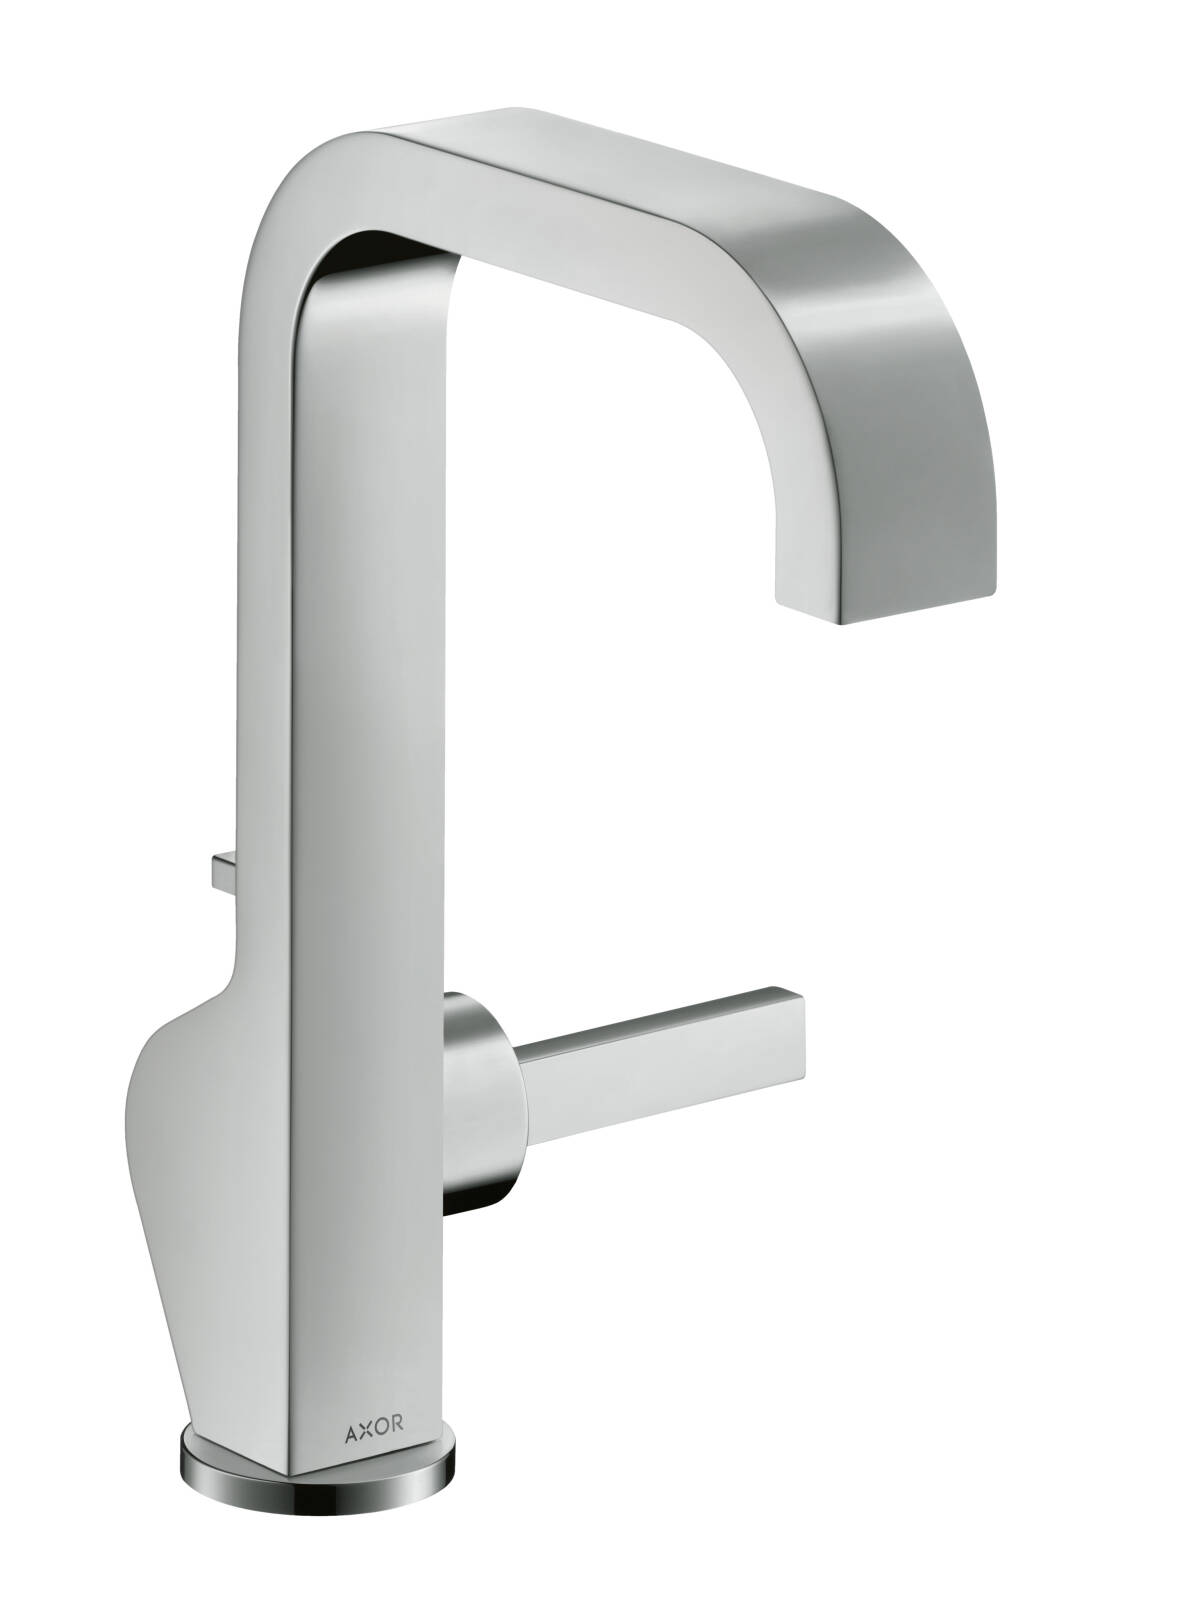 Single lever basin mixer 190 with pin handle and pop-up waste set, Chrome, 39034000